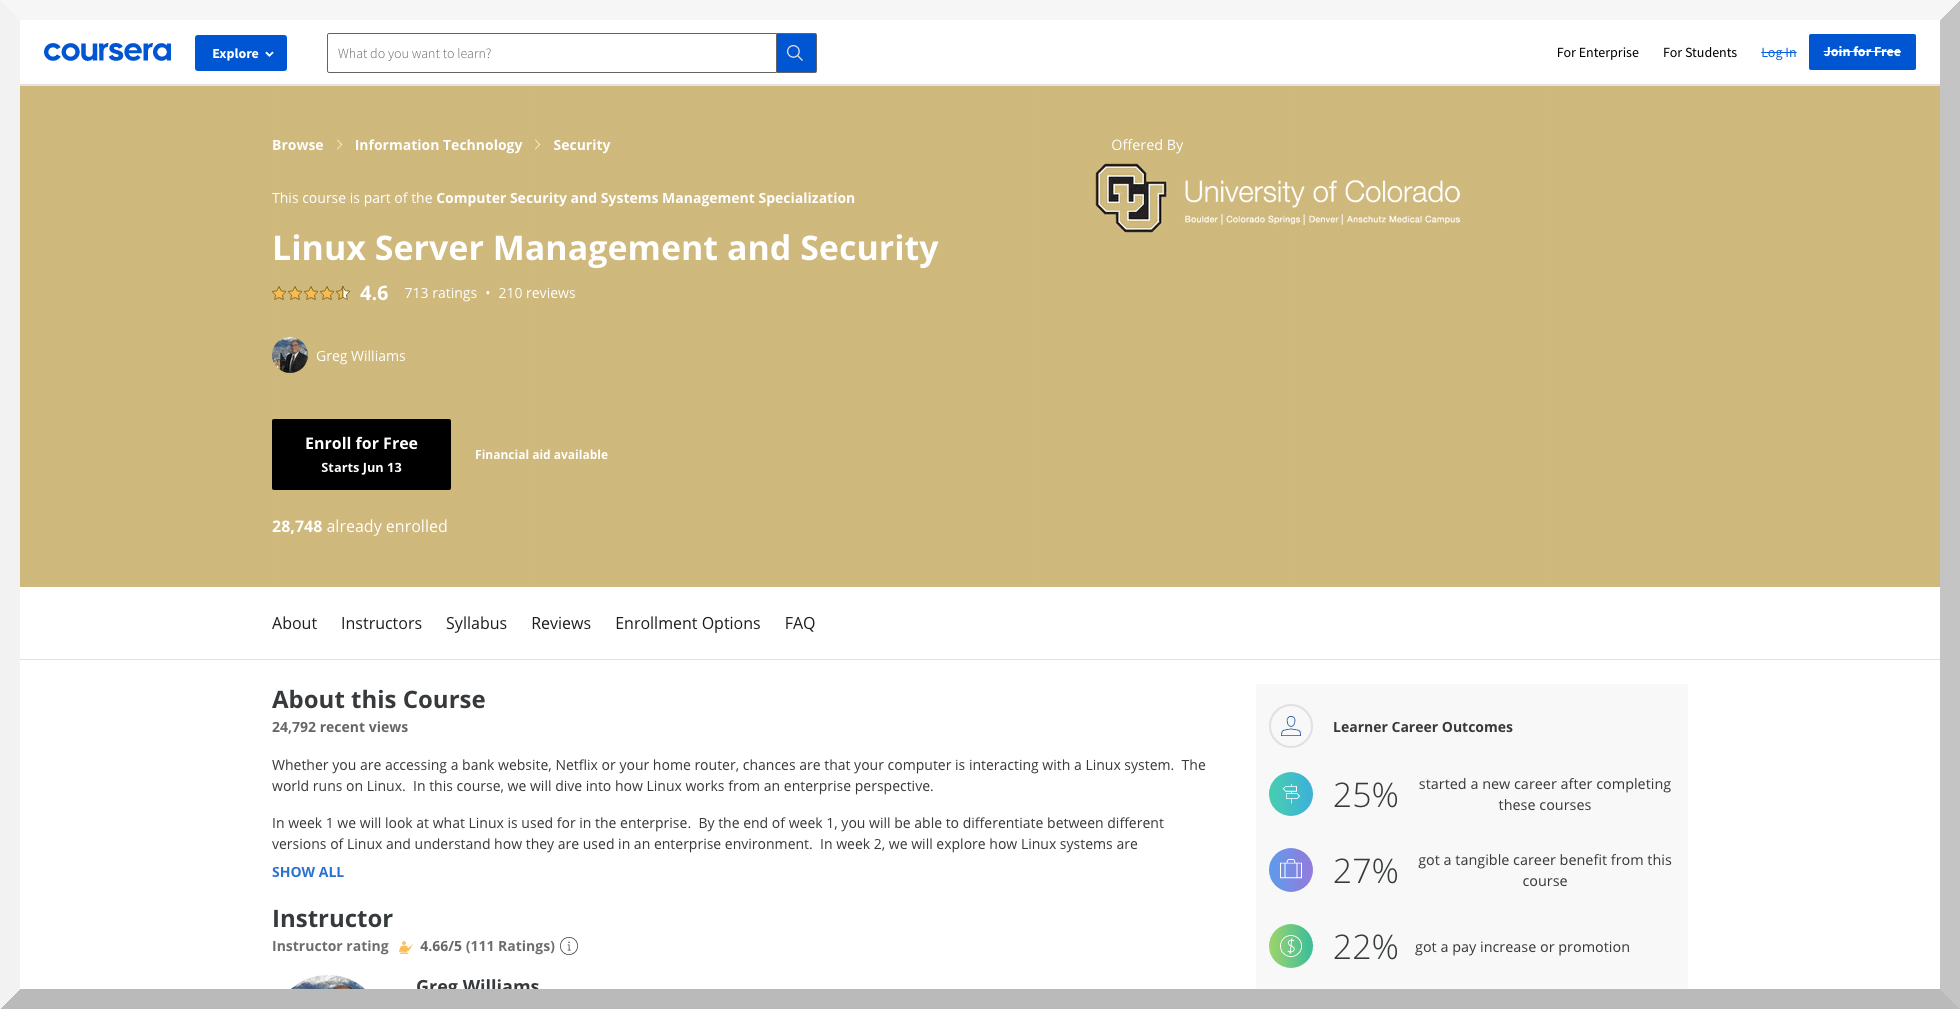 Linux Server Management and Security by University of Colorado – Coursera